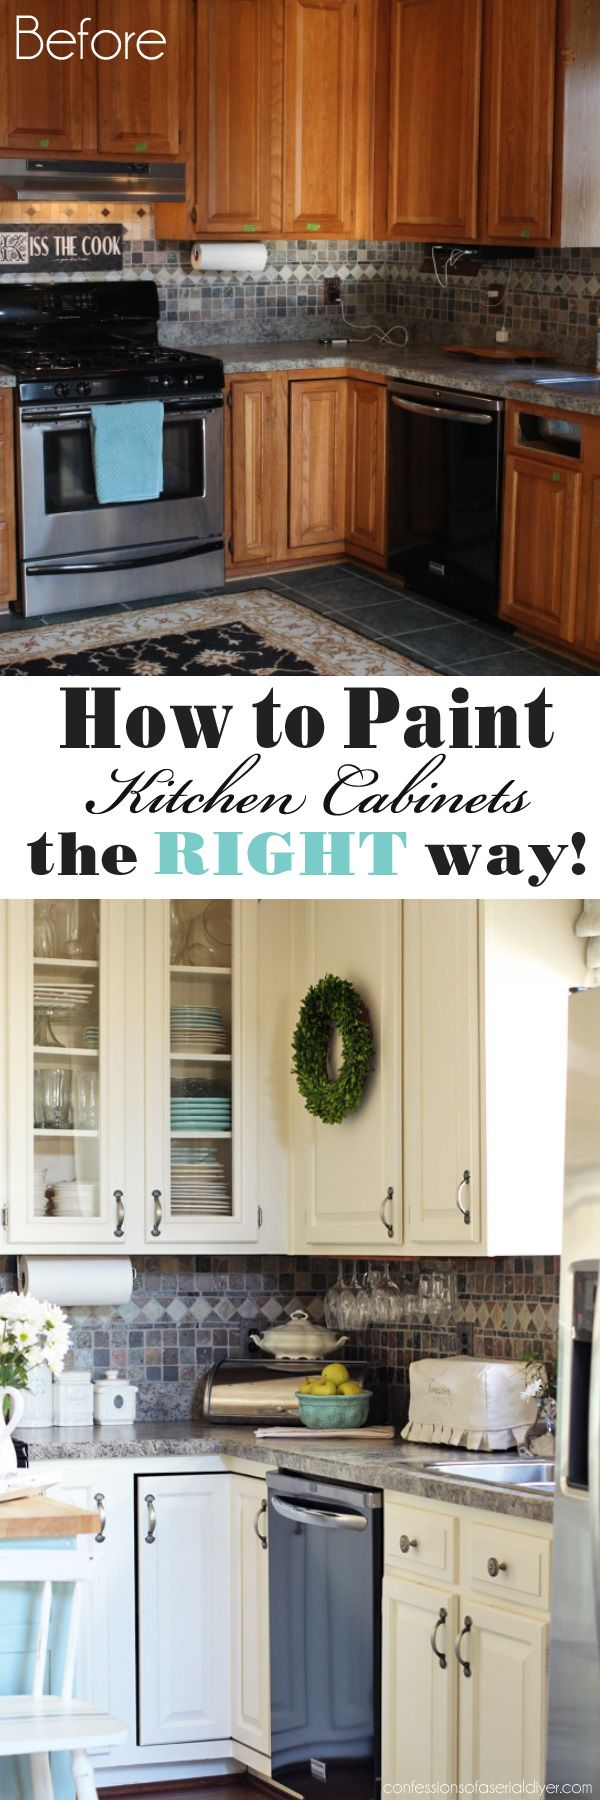 how to paint kitchen cabinets the right way from confessions of a serial do it - Kitchen Cabinet Com